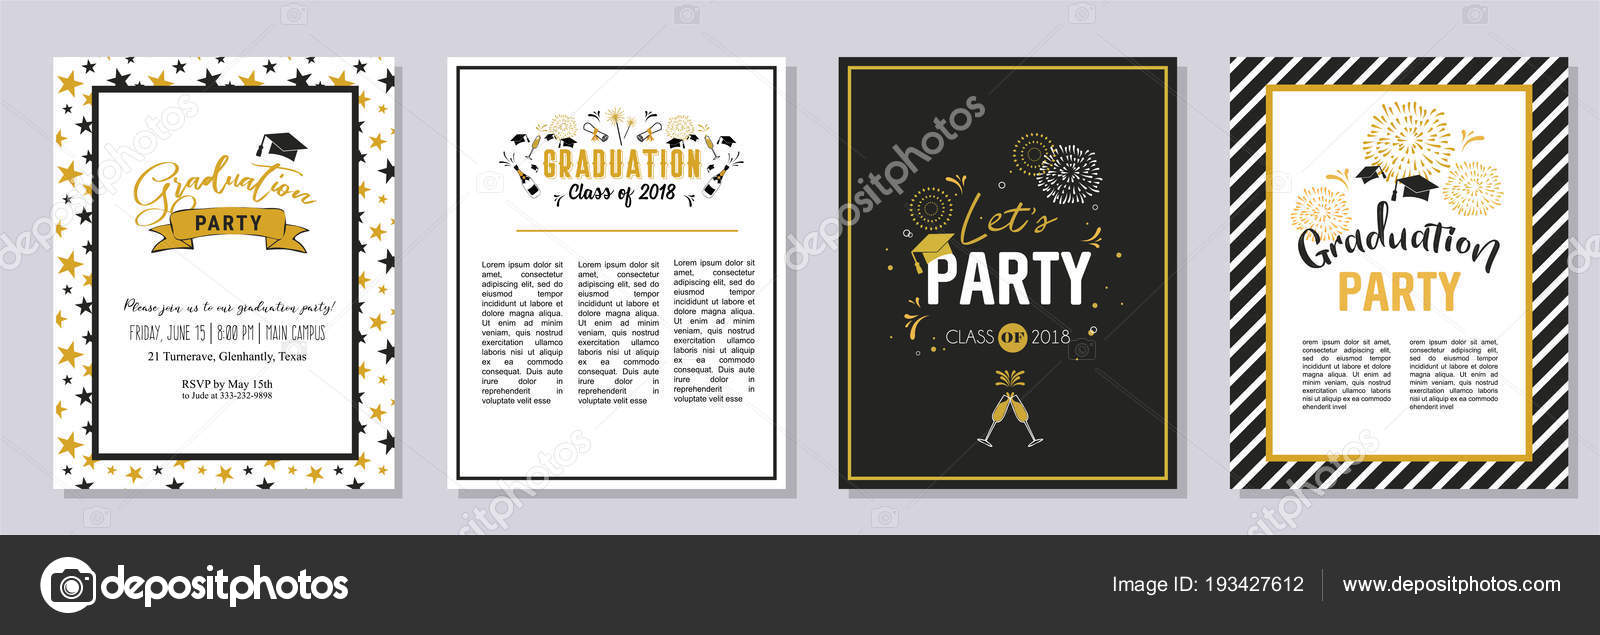 Graduation Class of 2018 greeting card and invitation template set ...